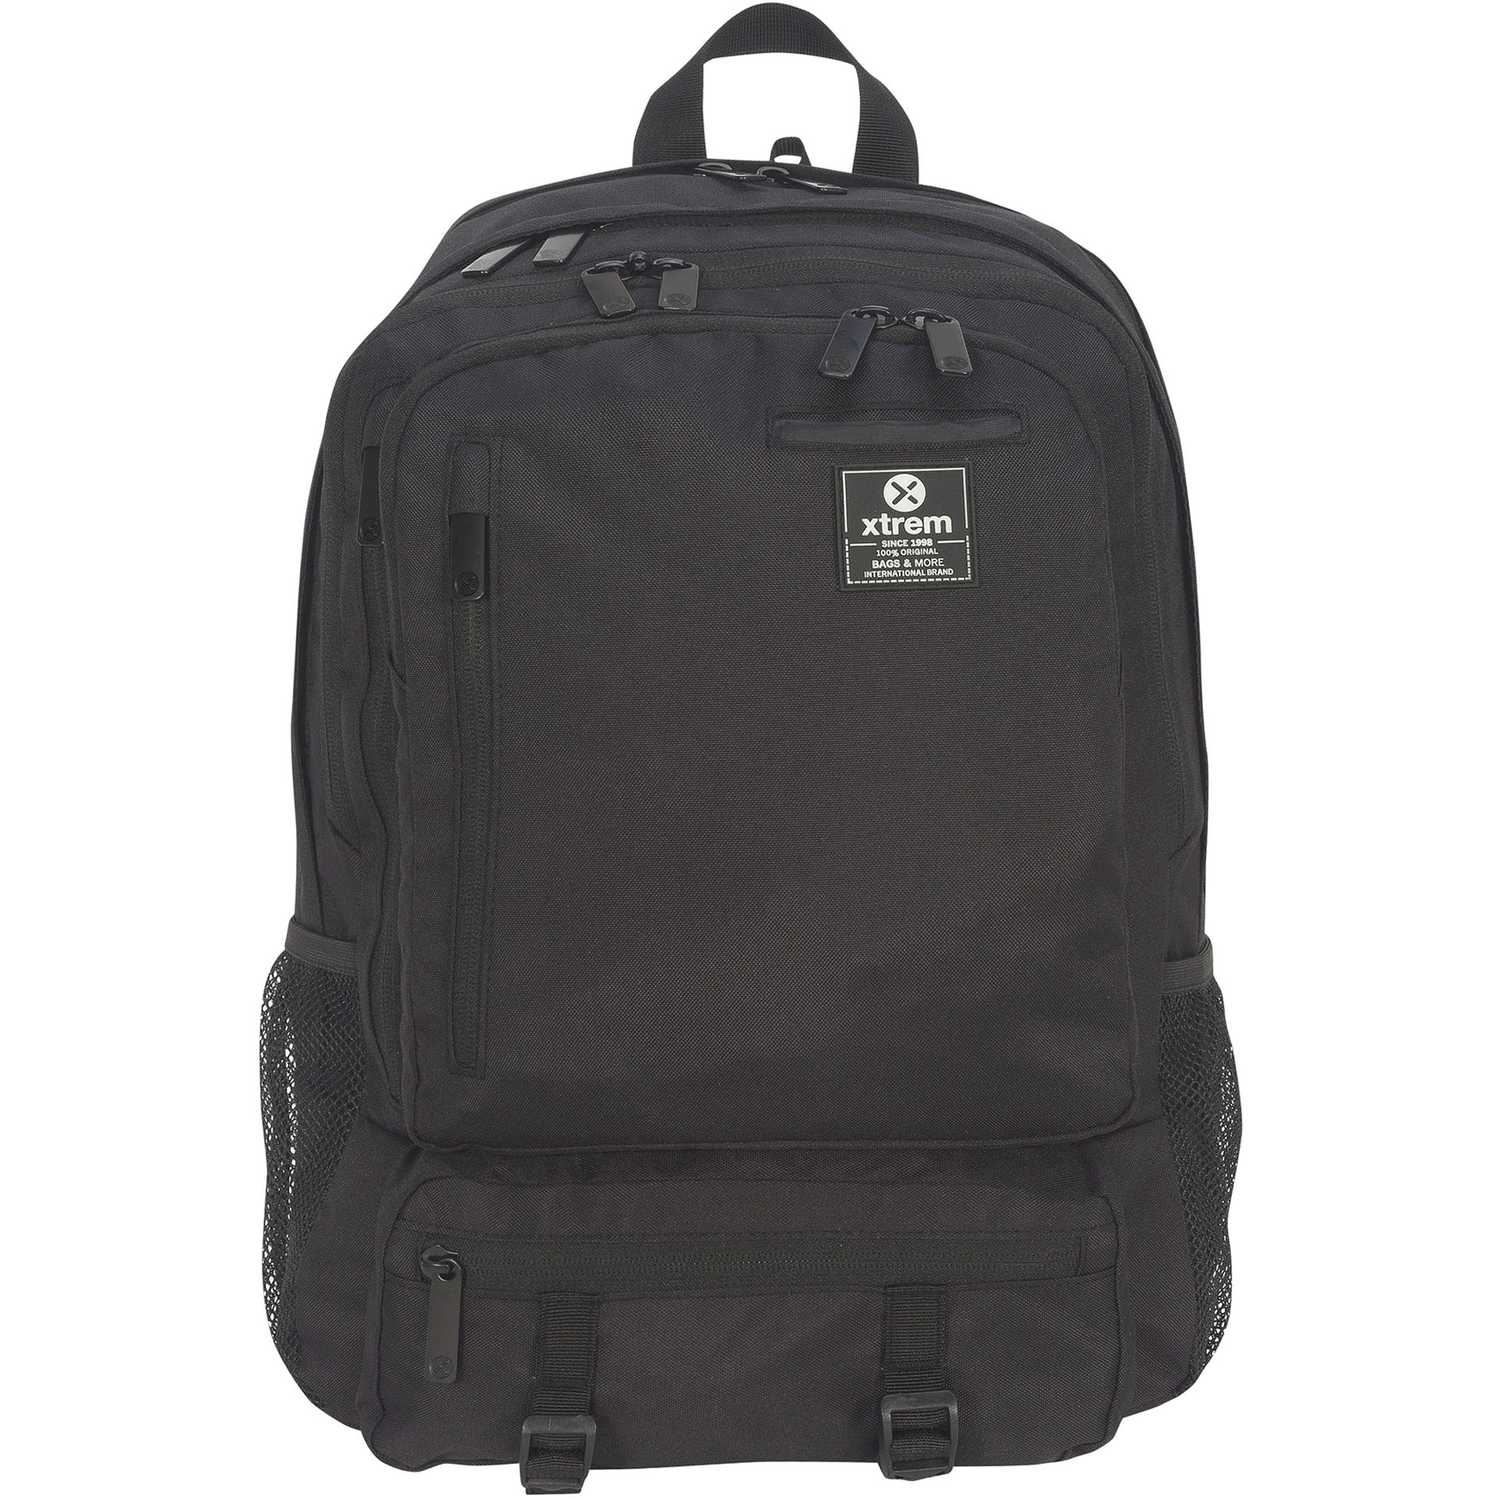 Mochila de Niño Xtrem Negro backpack black journey 802